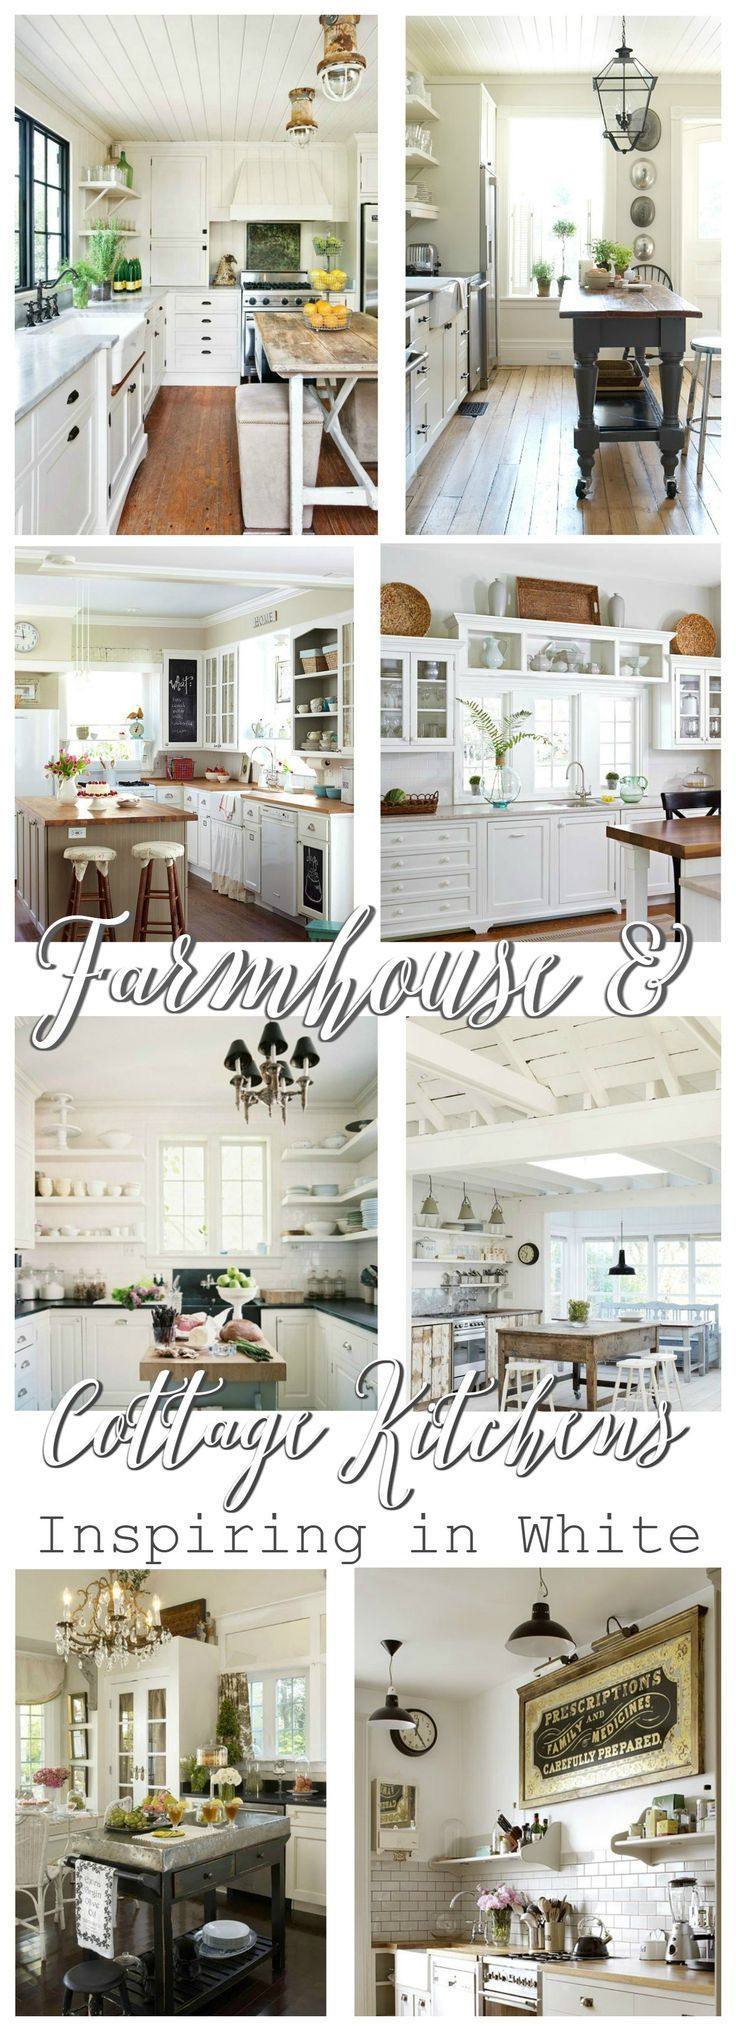 Farmhouse Cottage Kitchens at http://foxhollowcottage.com - Ideas for decorating, inspiring in White!